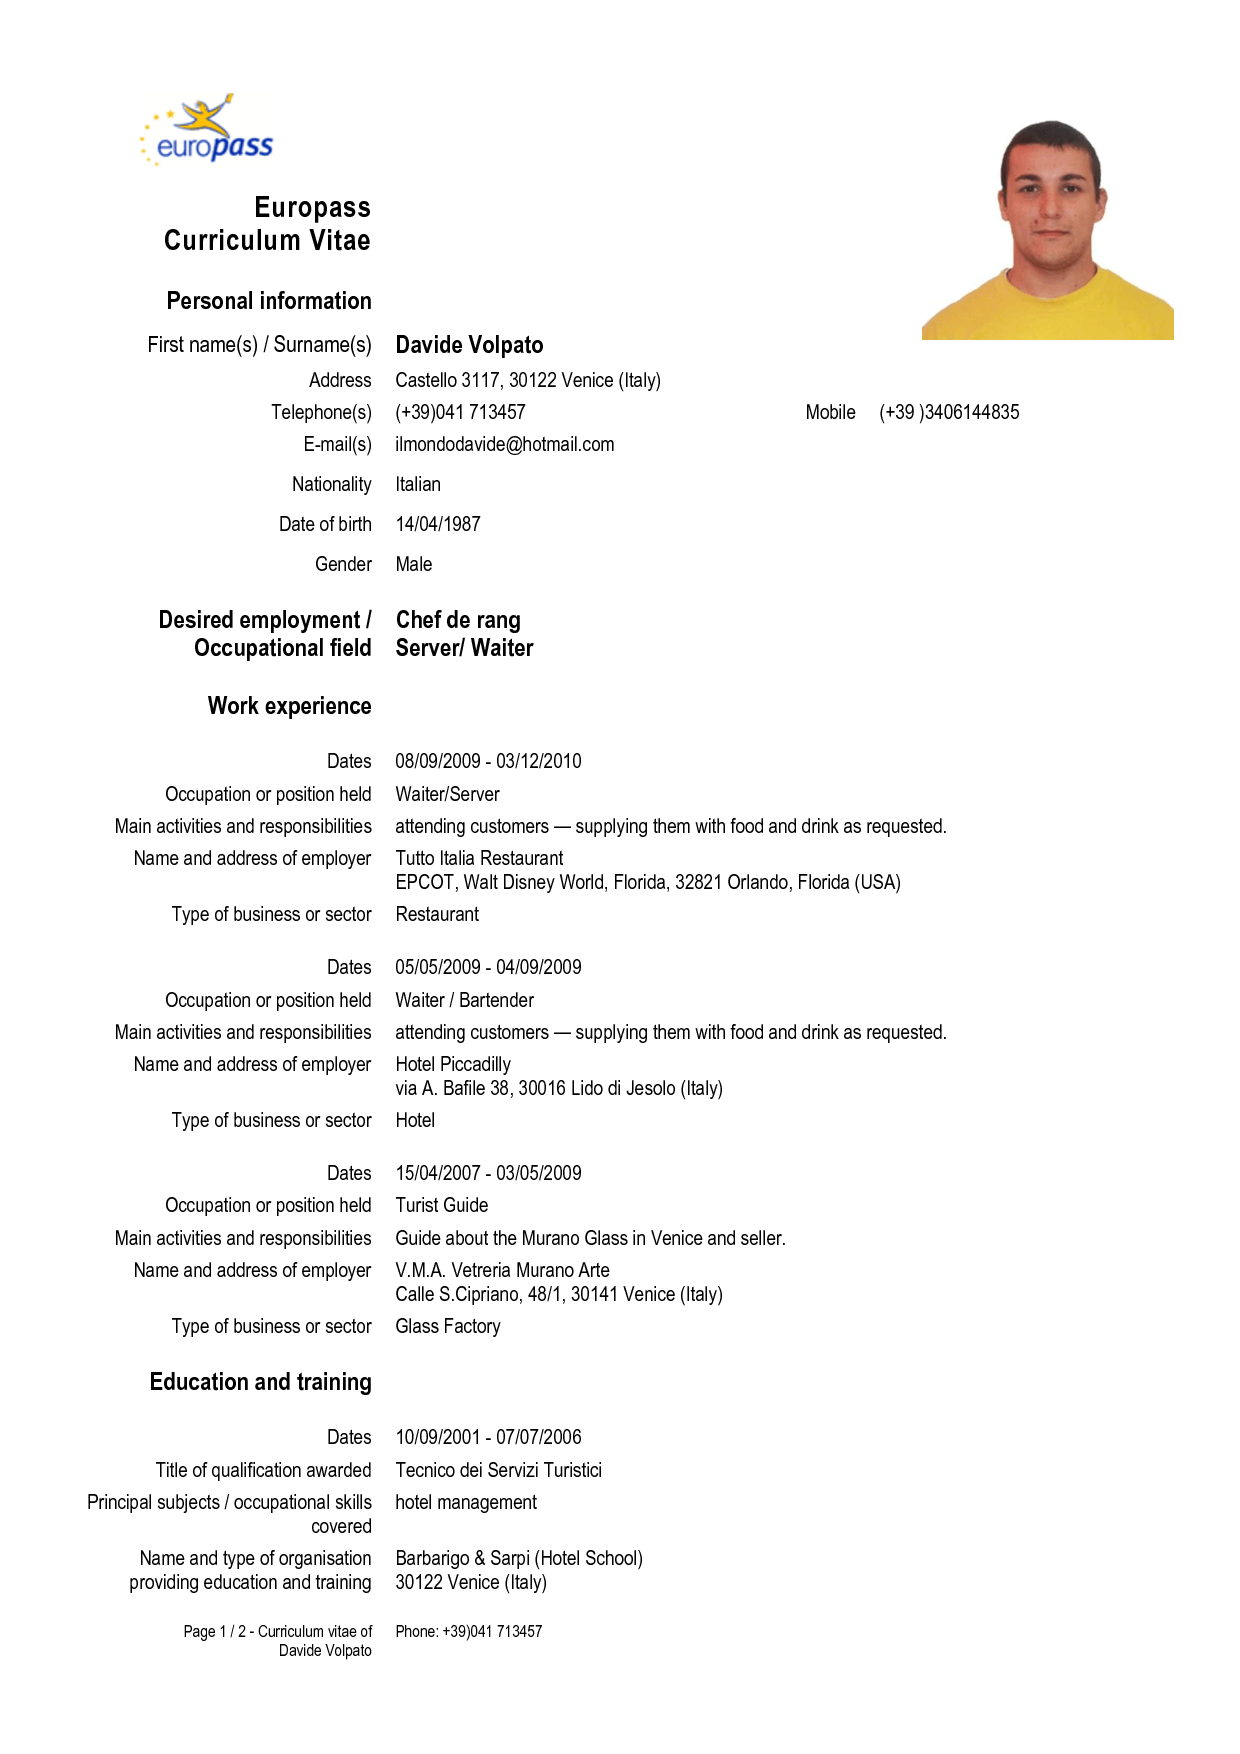 Europass cv template english word boatremyeaton europass cv template english word yelopaper Gallery